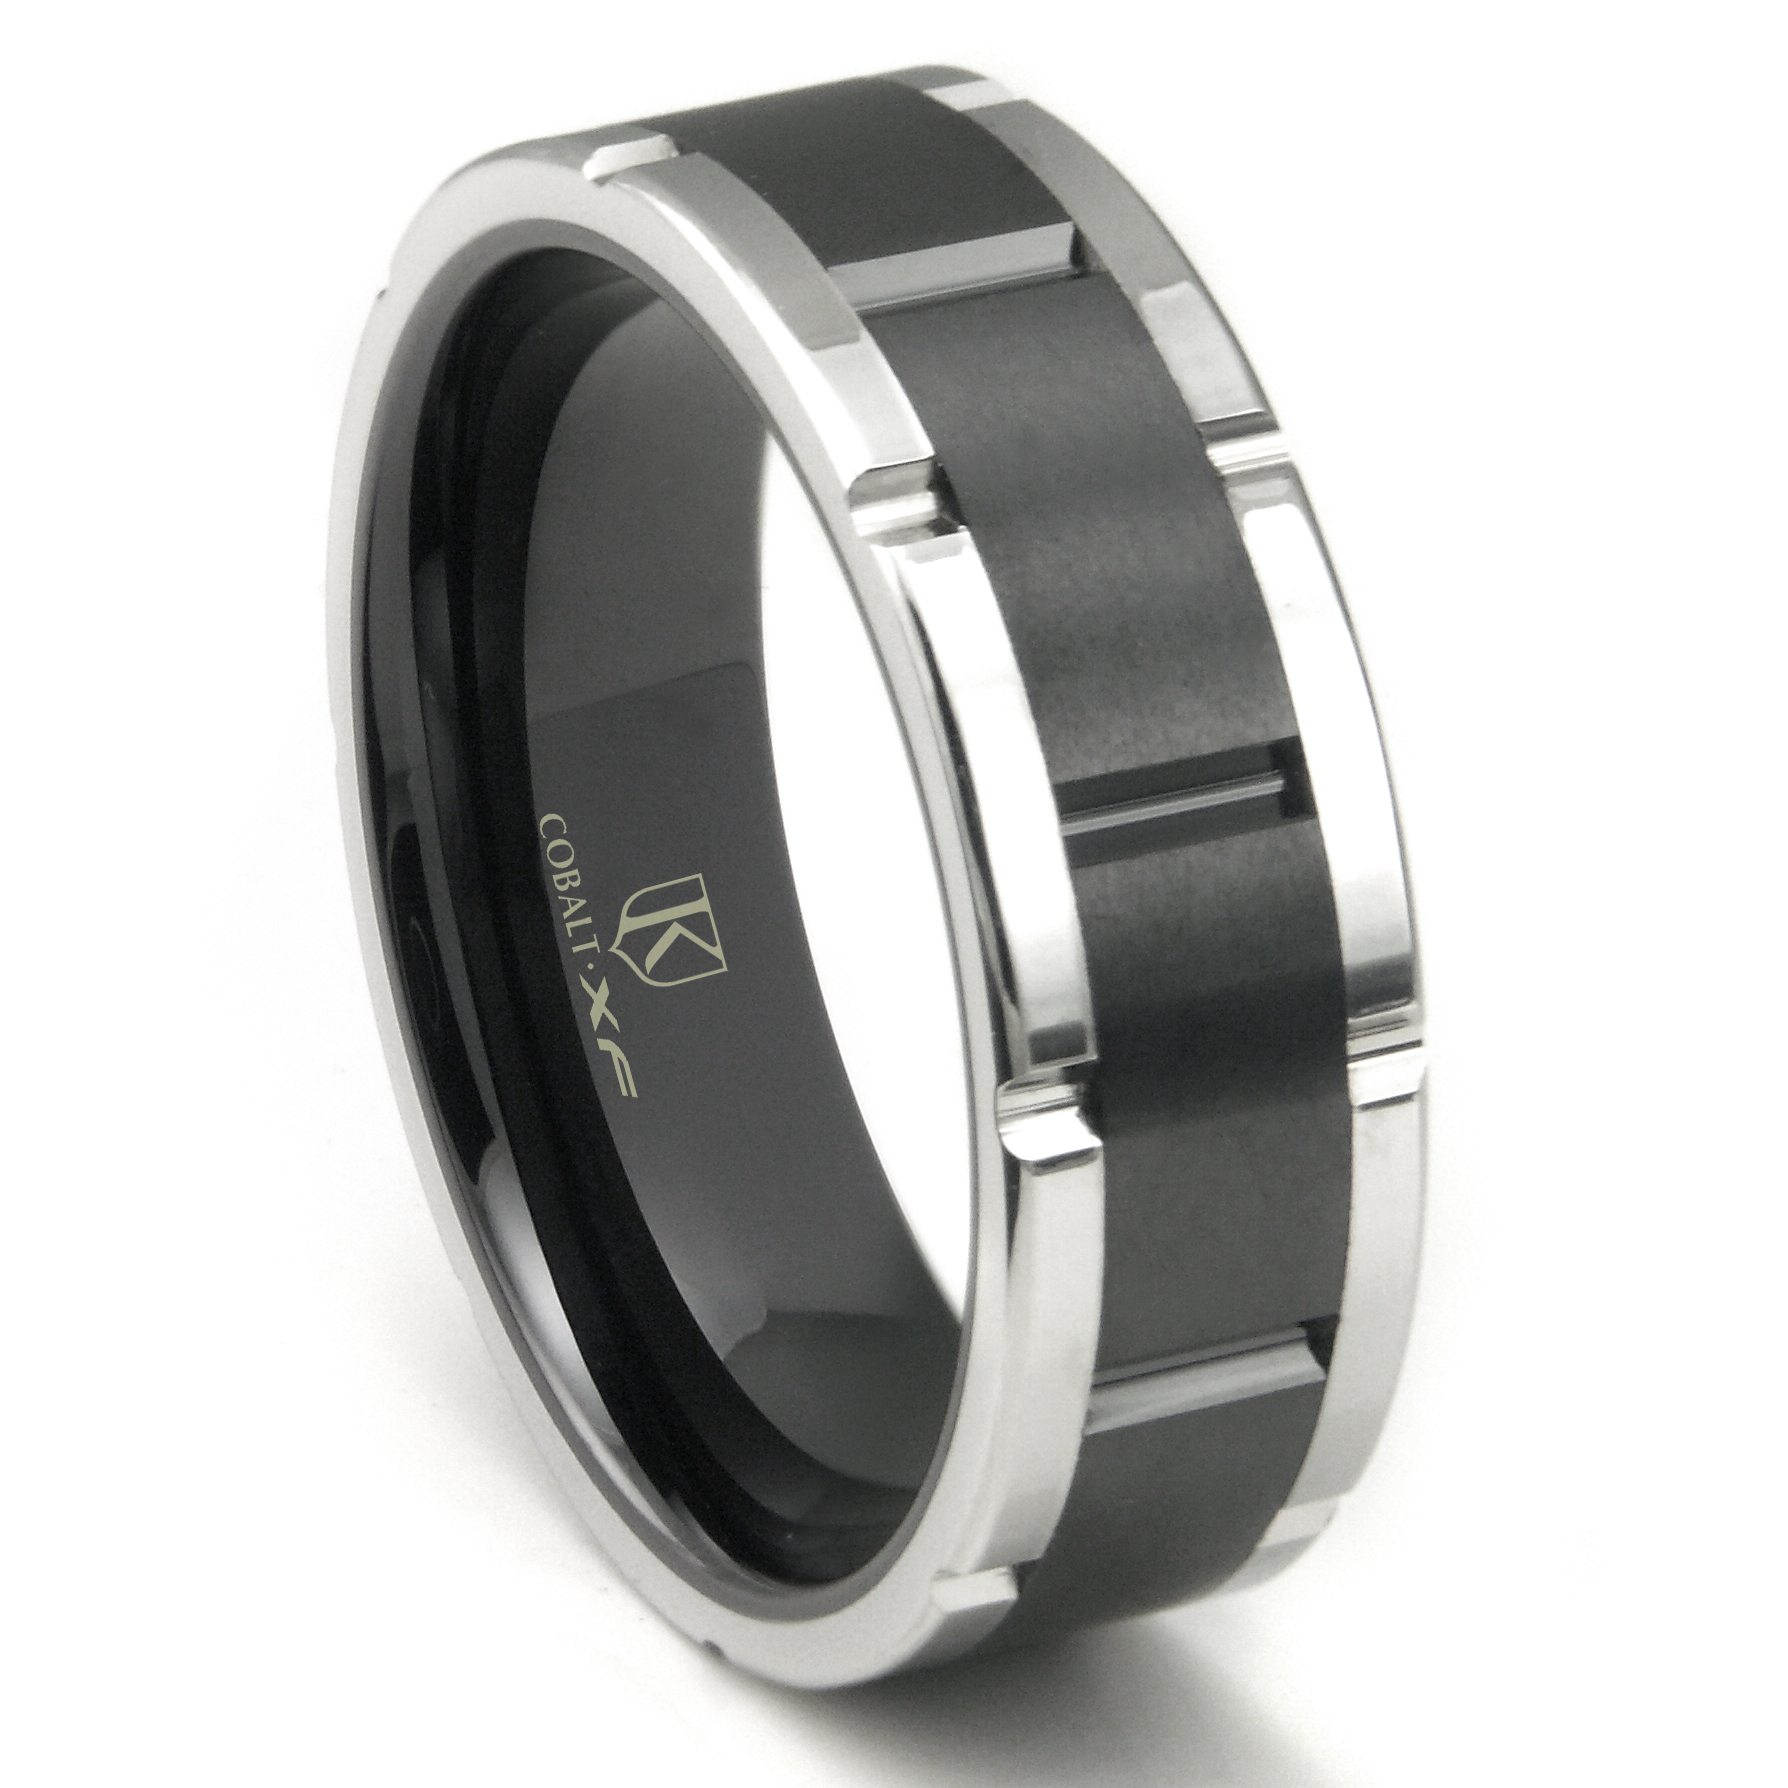 Cobalt XF Chrome 8MM TwoTone Matte Finish Center Wedding Band Ring